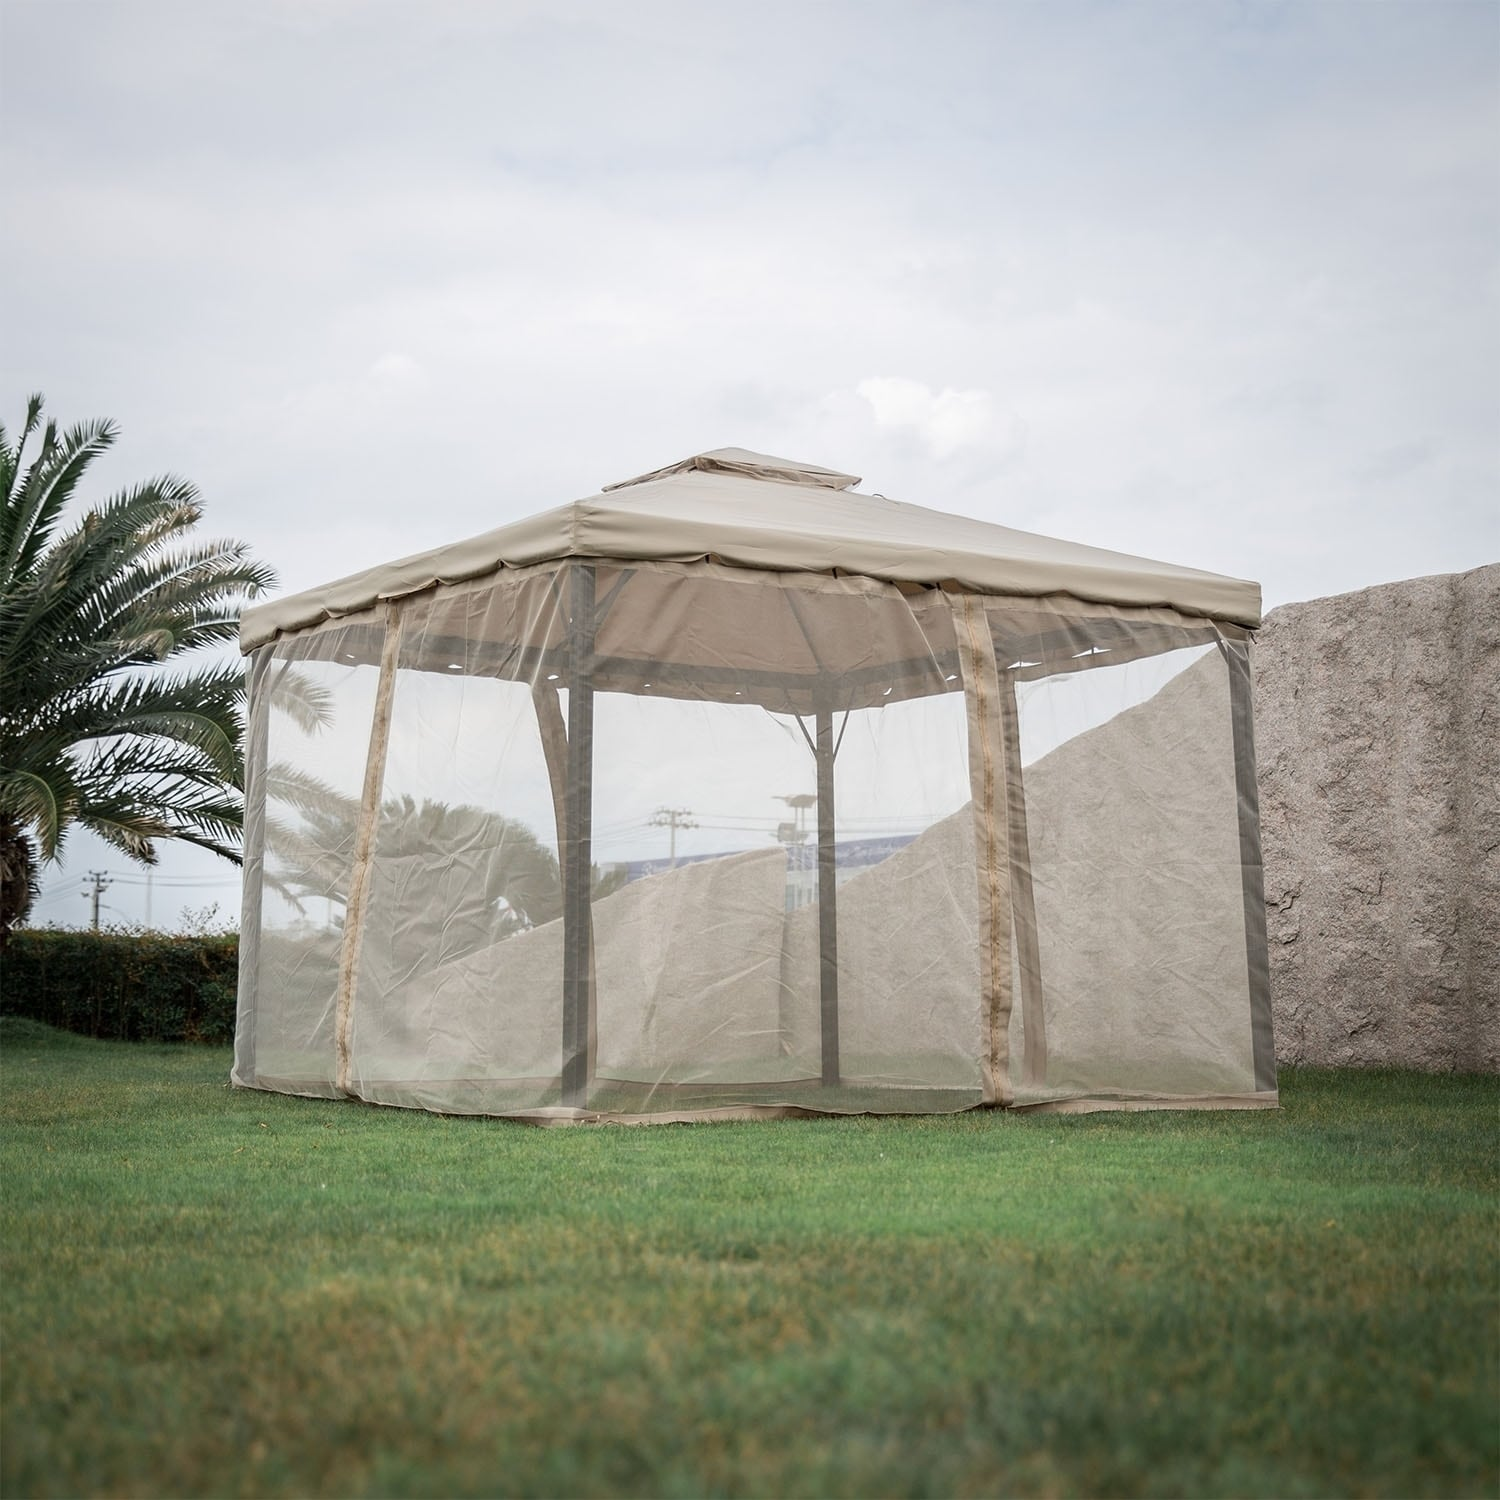 Shop Kinbor Outdoor Gazebo Patio Gazebo Pop up Canopy Tent w/ Mosquito Netting u0026 Side Walls - On Sale - Free Shipping Today - Overstock - 26956242 & Shop Kinbor Outdoor Gazebo Patio Gazebo Pop up Canopy Tent w ...